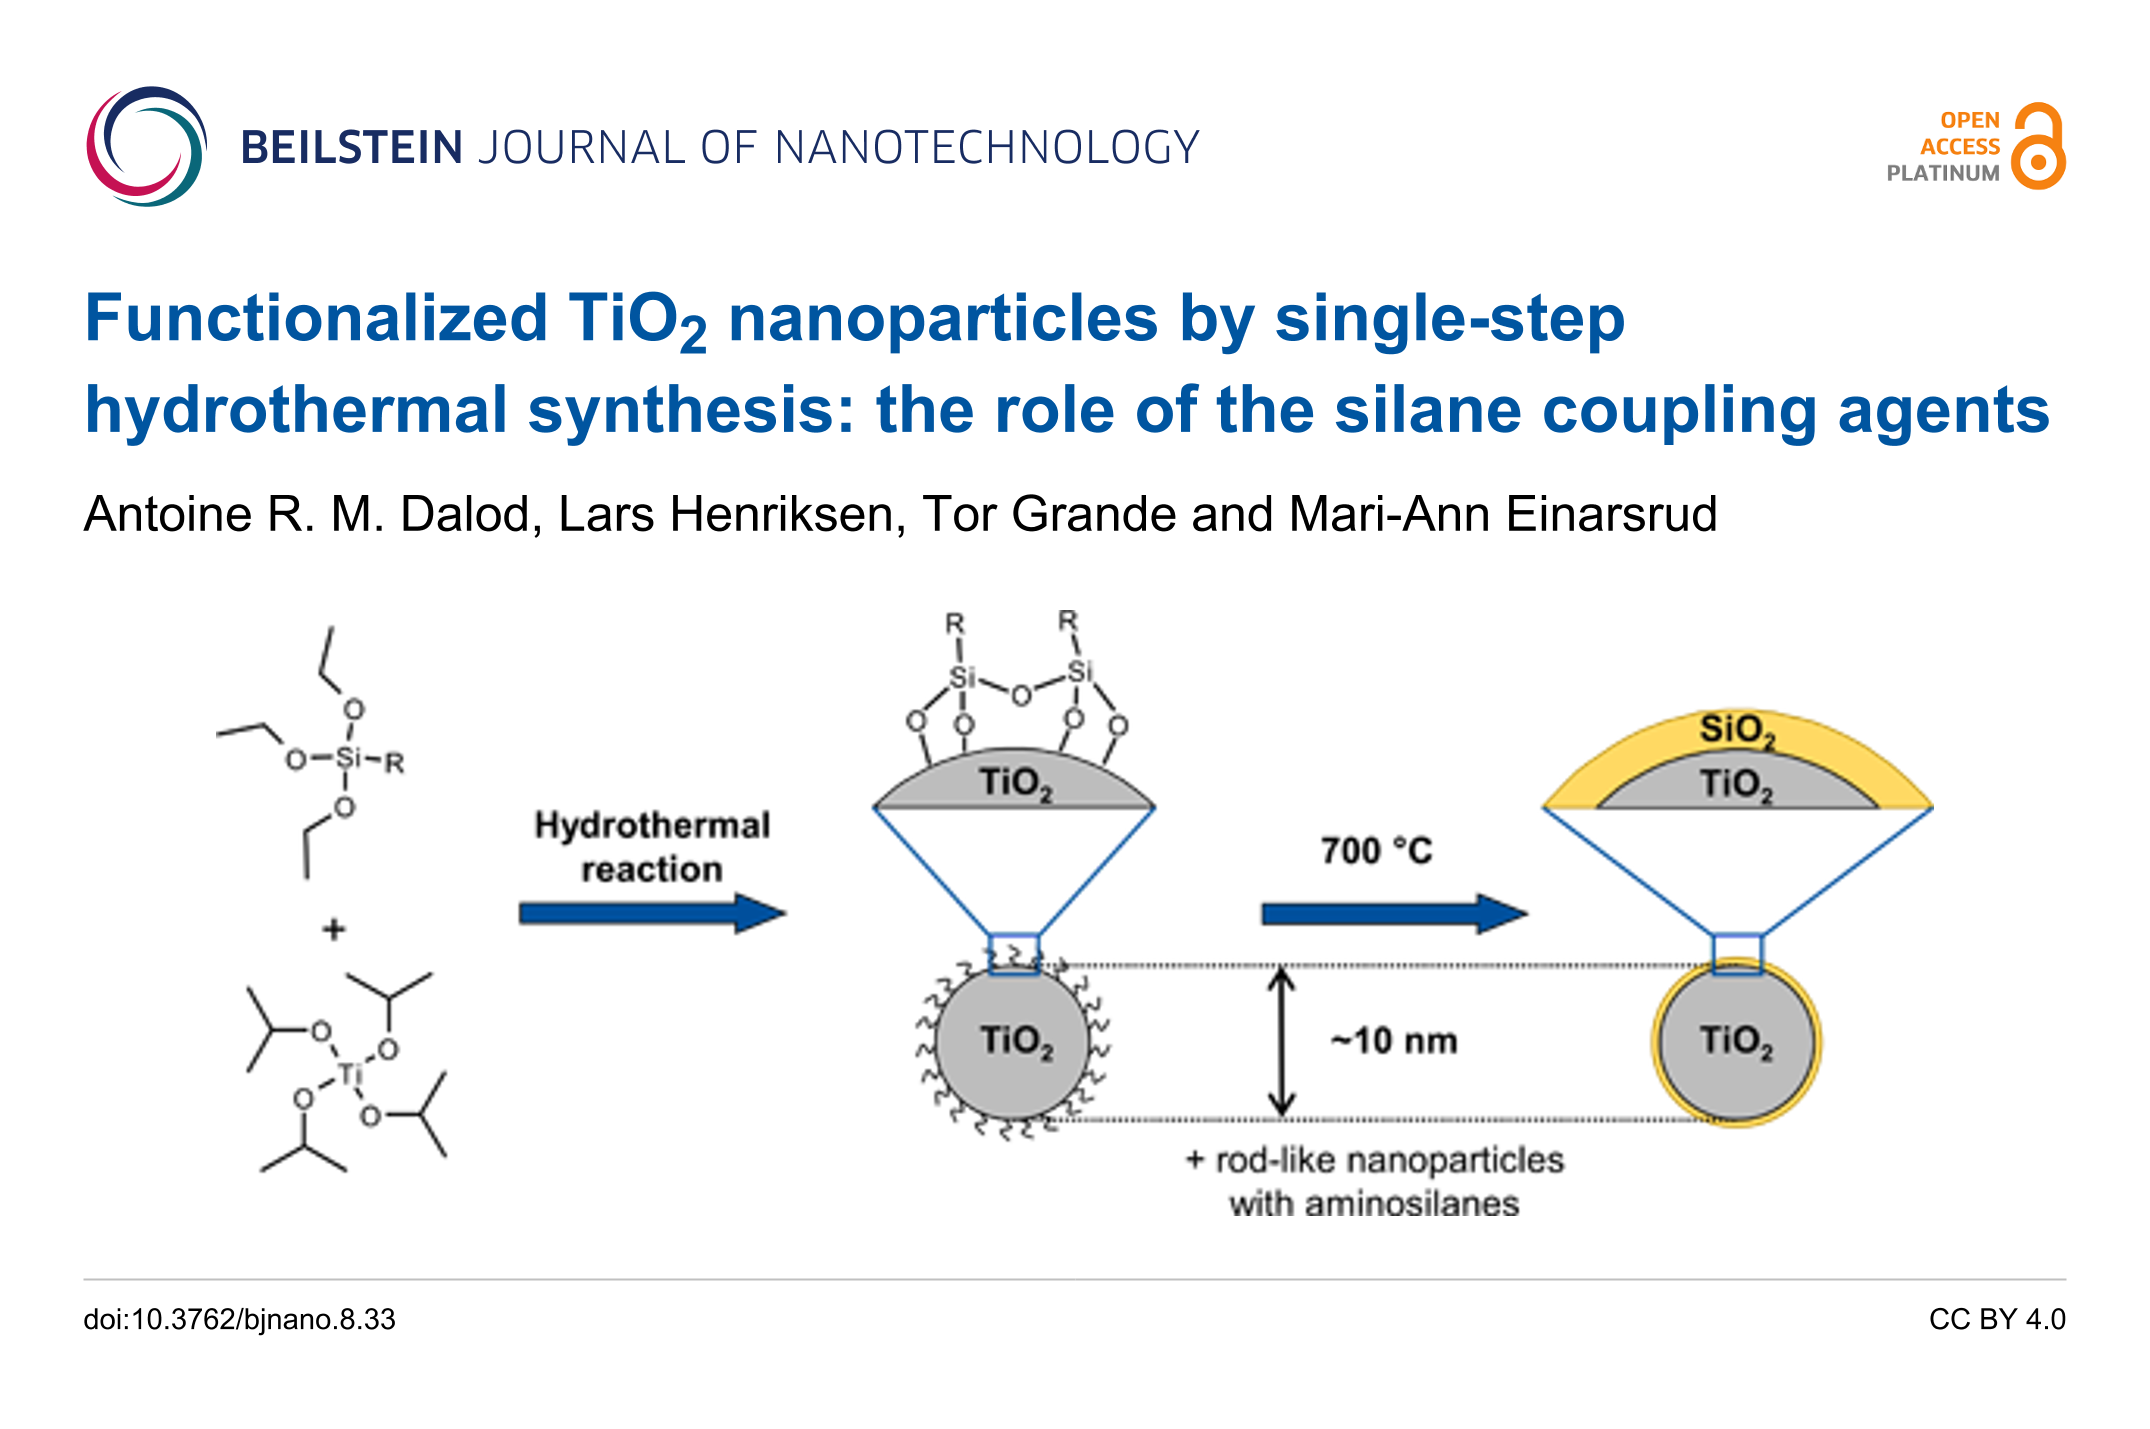 Functionalized TiO2 nanoparticles by single-step